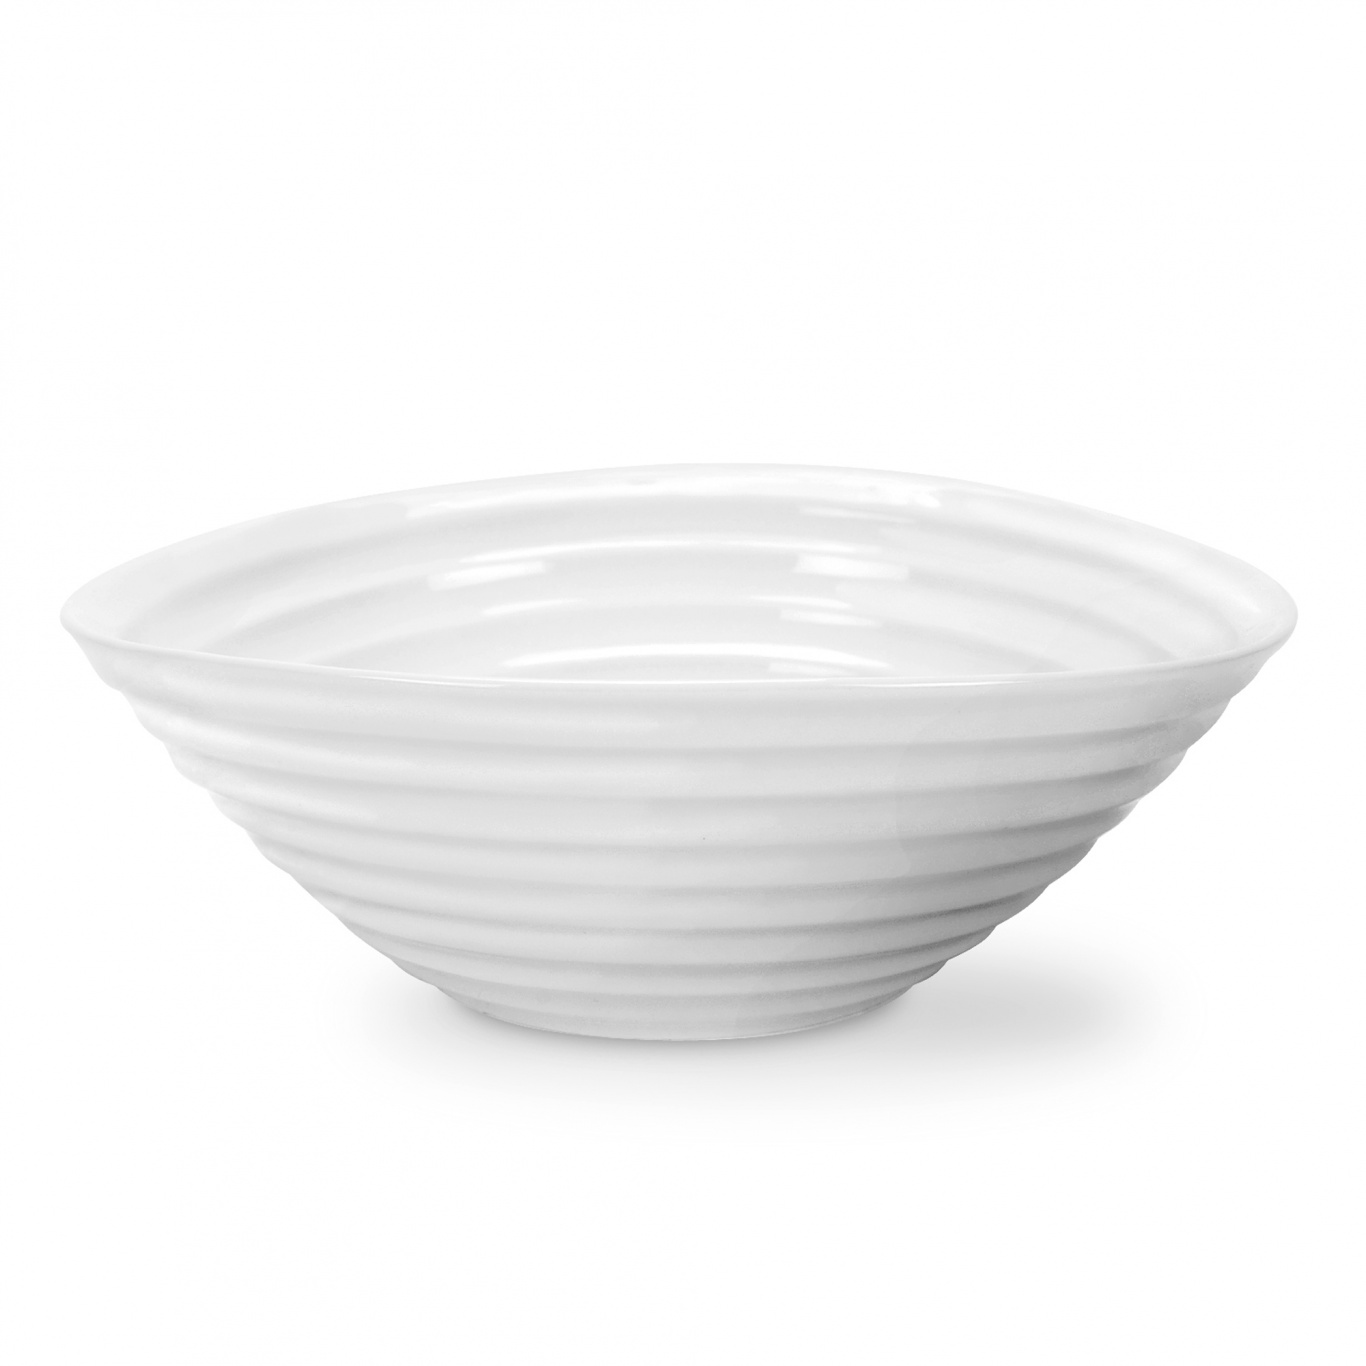 Image of Sophie Conran White Cereal Bowl 19cm